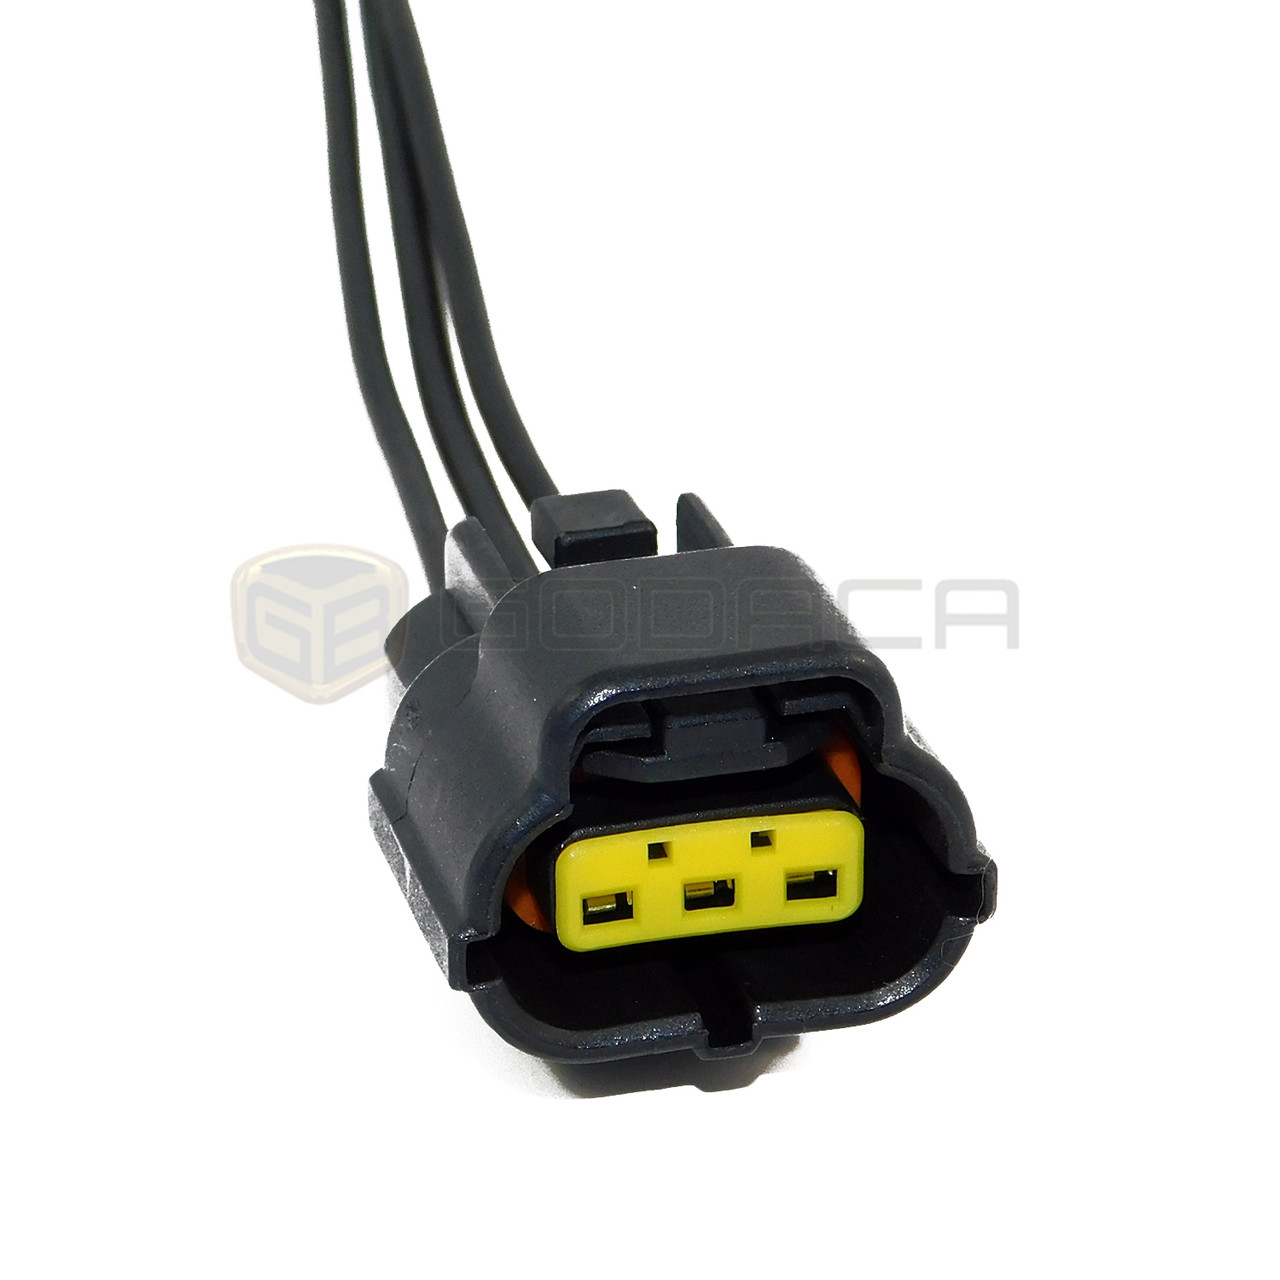 1 x female connector plug 3 way 3 pin wire denso pigtail harness godaca llc  [ 1280 x 1280 Pixel ]